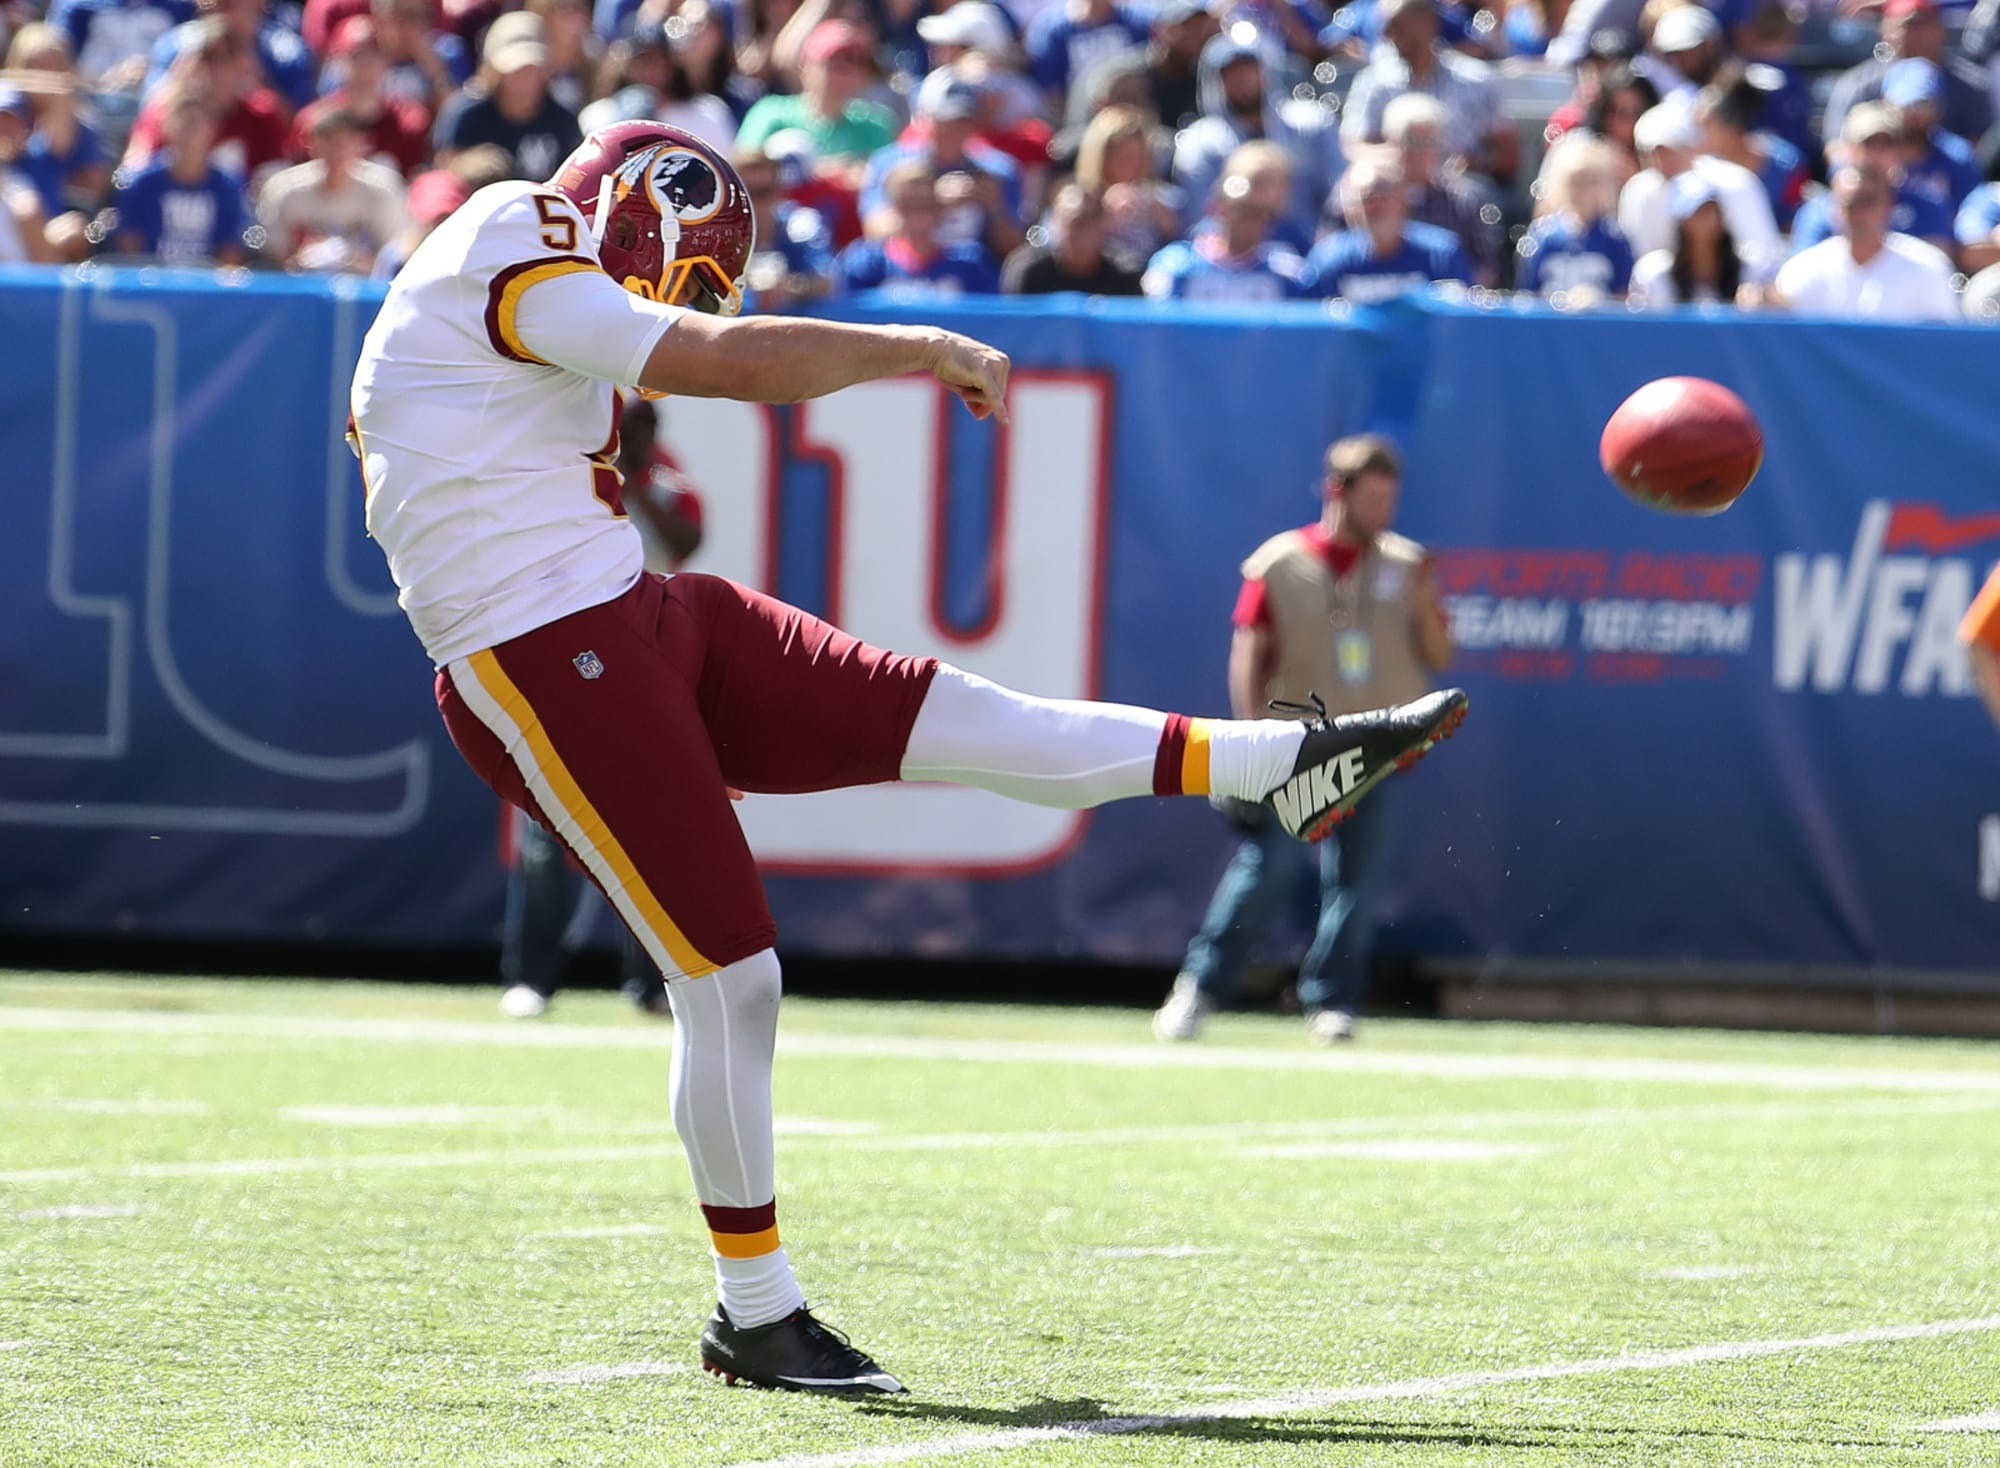 Redskins: Tress Way named NFC's Special Teams Player of the Week